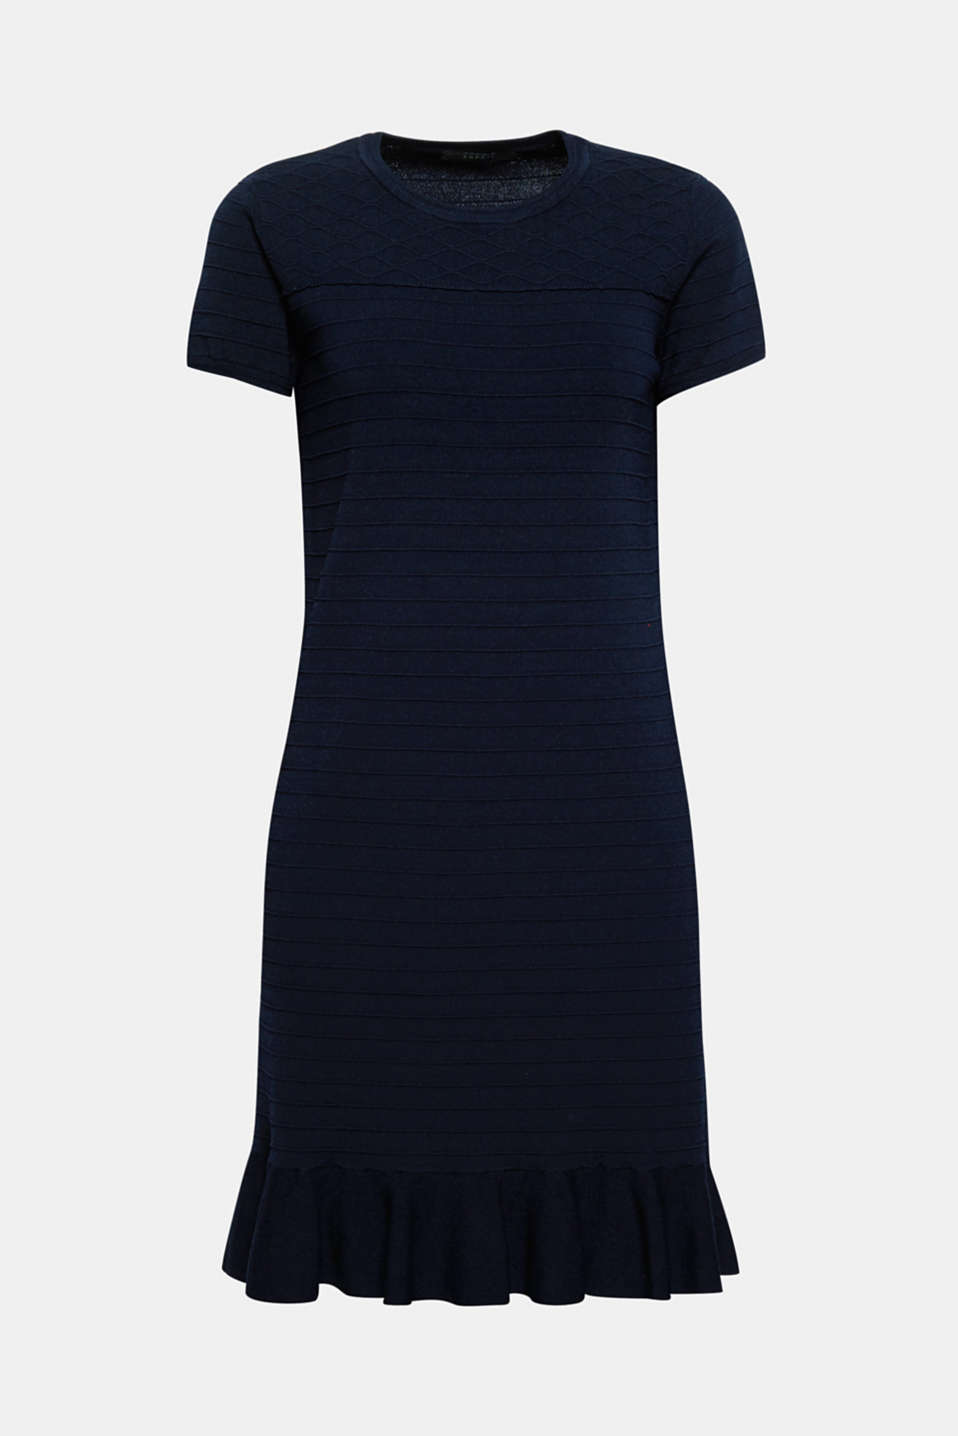 With its different textures and hem flounce, this fine knit dress comes in a sporty feminine mix!